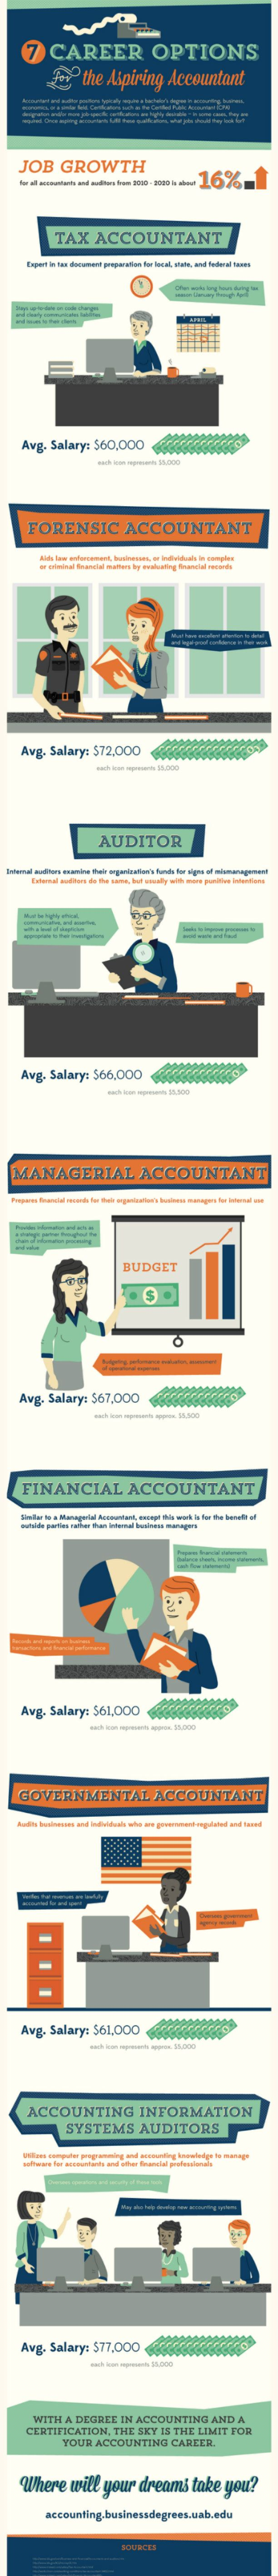 Career Options for Aspiring Accountants A career in accounting can be quite lucrative and satisfying in all aspects. The infographic below from the University of Alabama outlines seven career paths for accountants. To begin a career in accounting, you will typically need a bachelor's degree in business economics or accounting. You will also need a related certification, like the certified public accountant (CPA) designation.